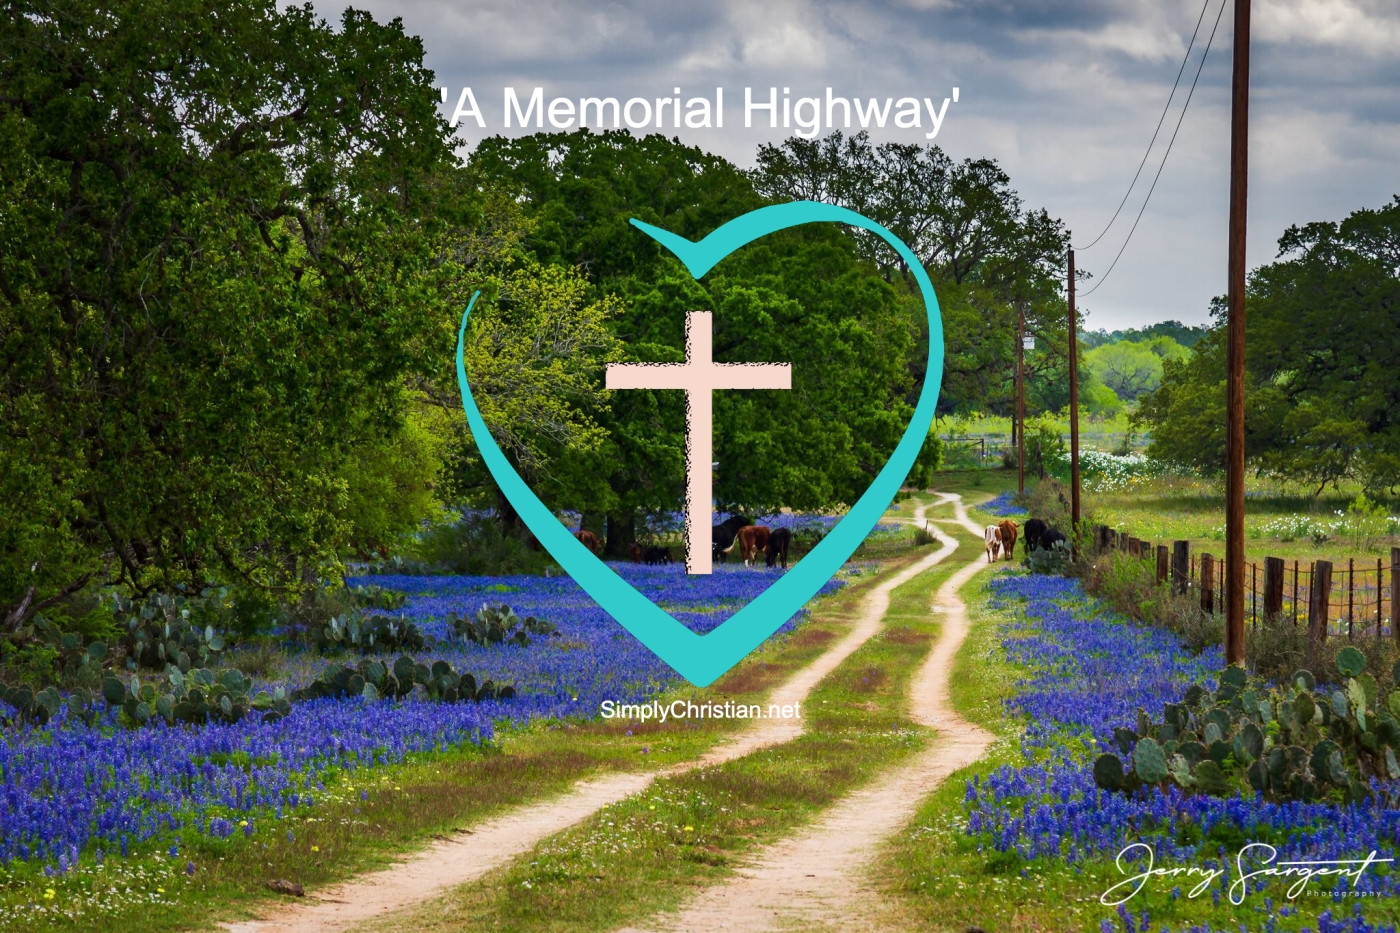 A memorial highway Open To Jesus Moment Simply Christian Jerry Sargent Photography Dave Nance